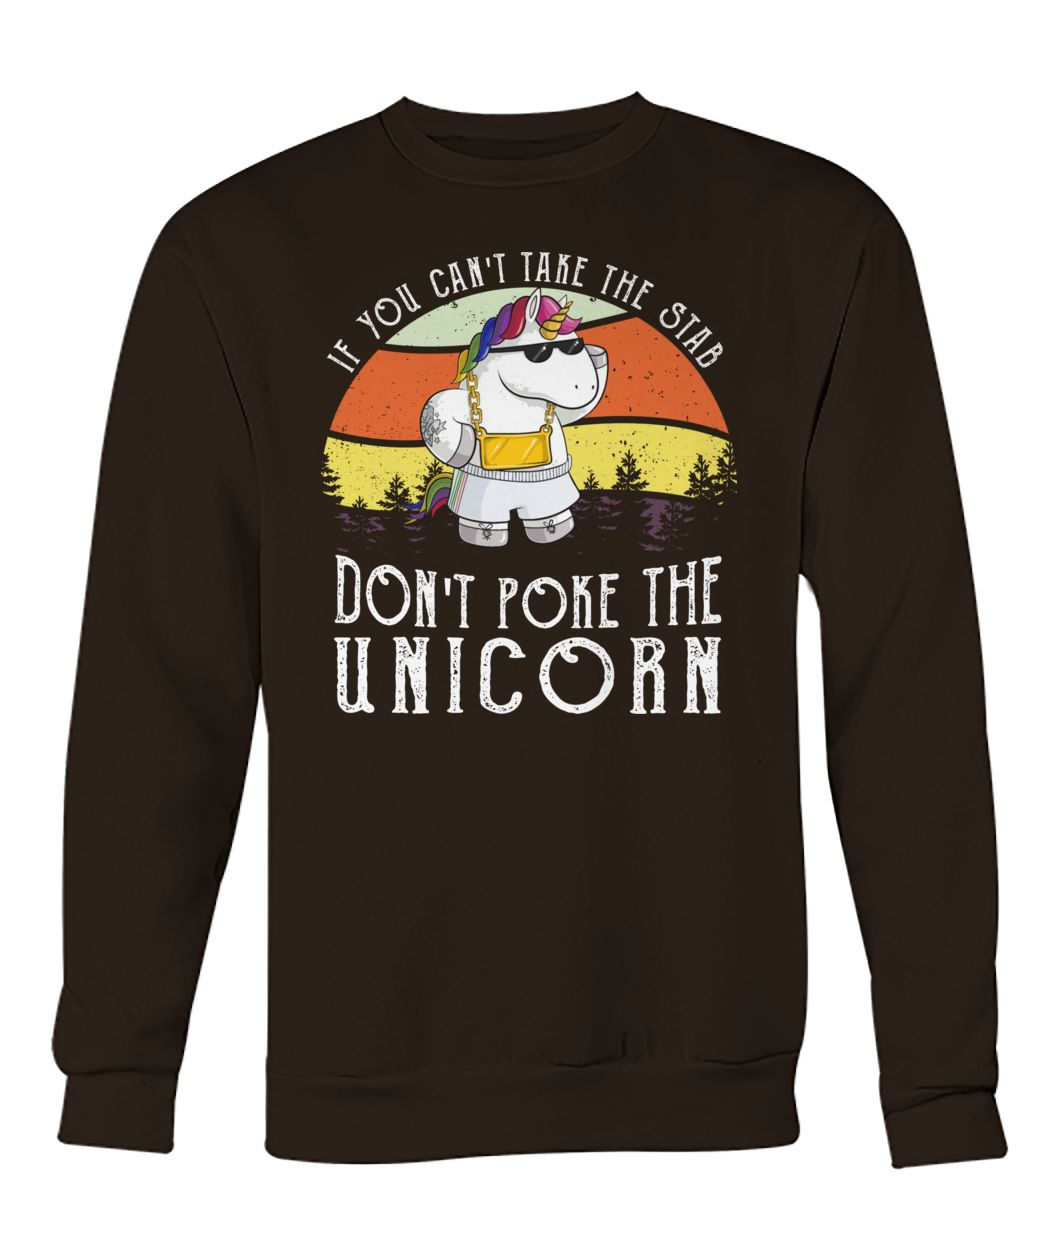 Vintage if you can't take the stab don't poke the unicorn crew neck sweatshirt